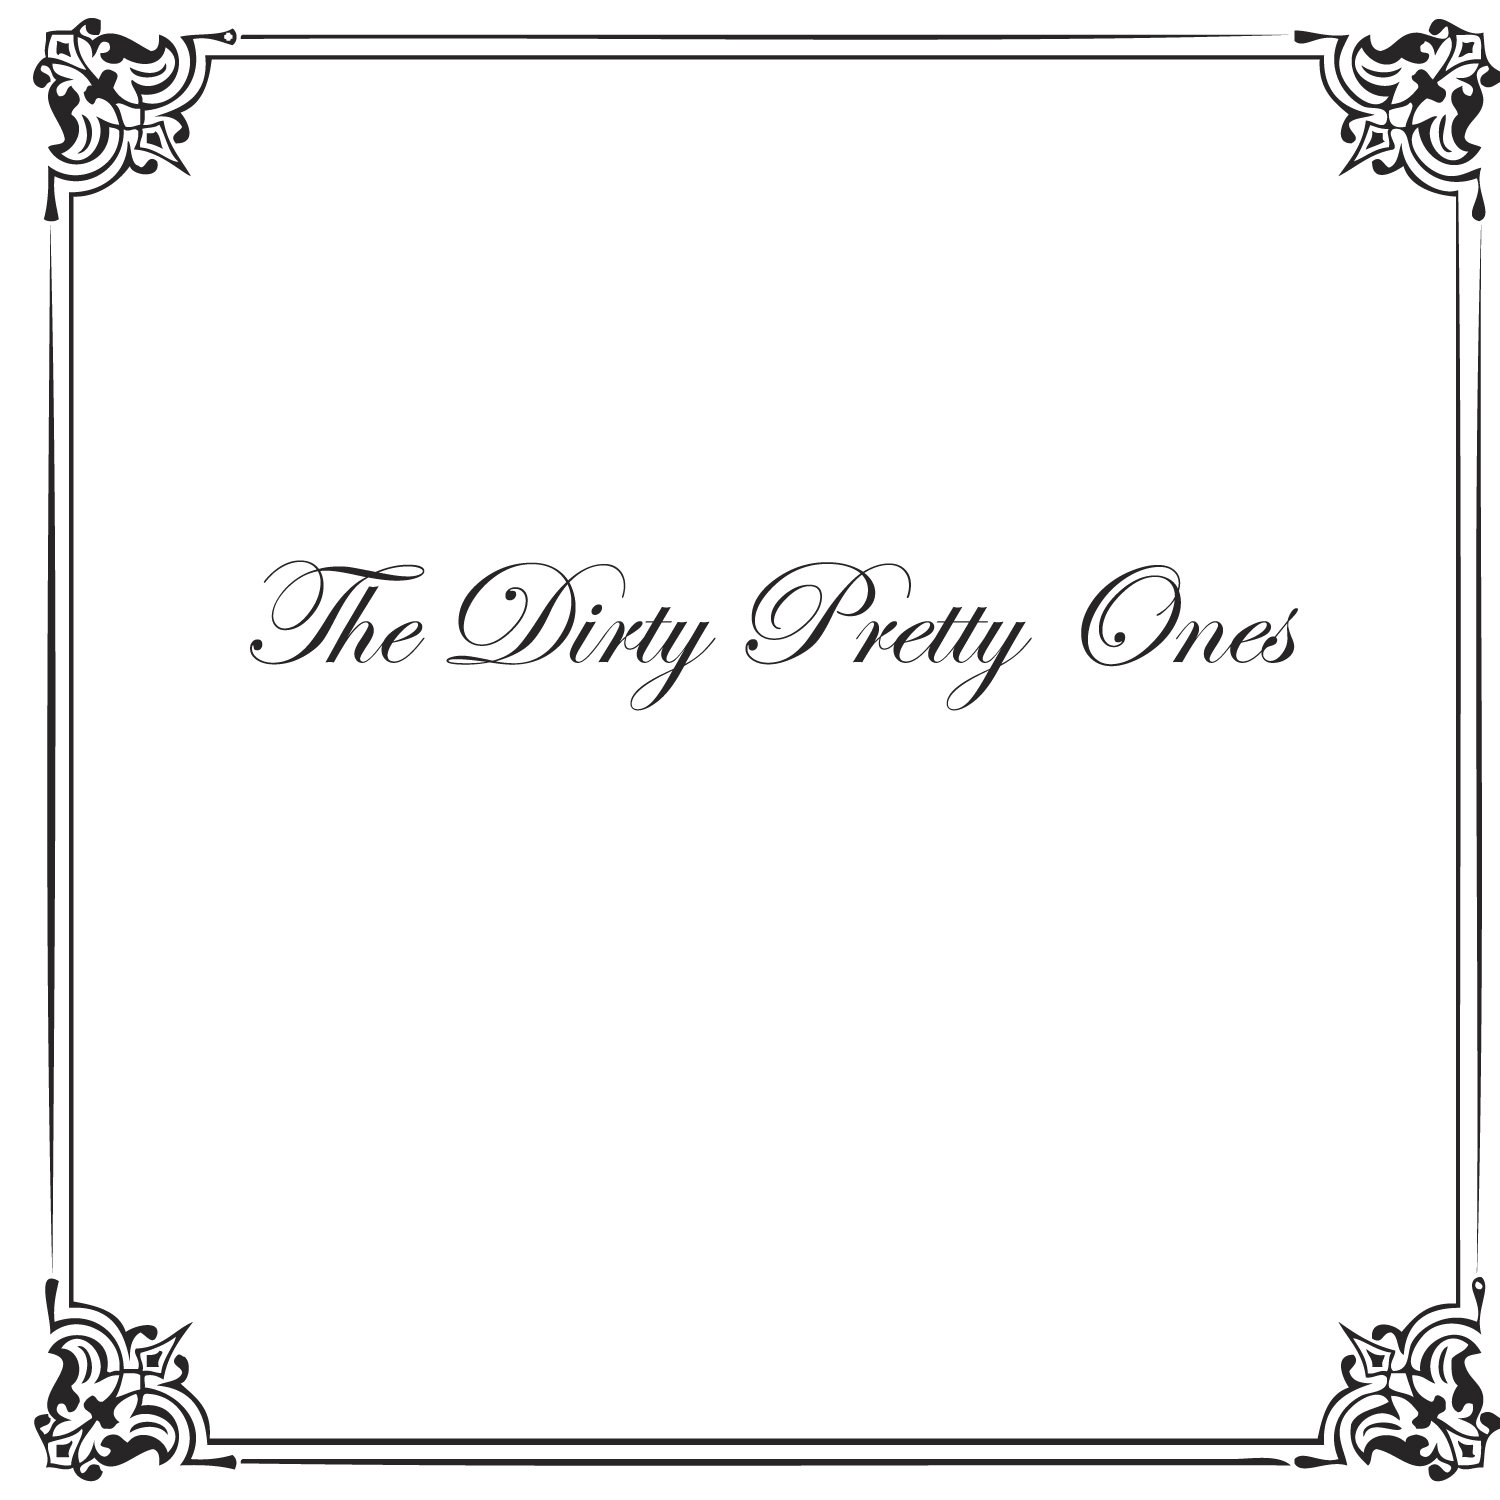 The Dirty Pretty Ones - EP